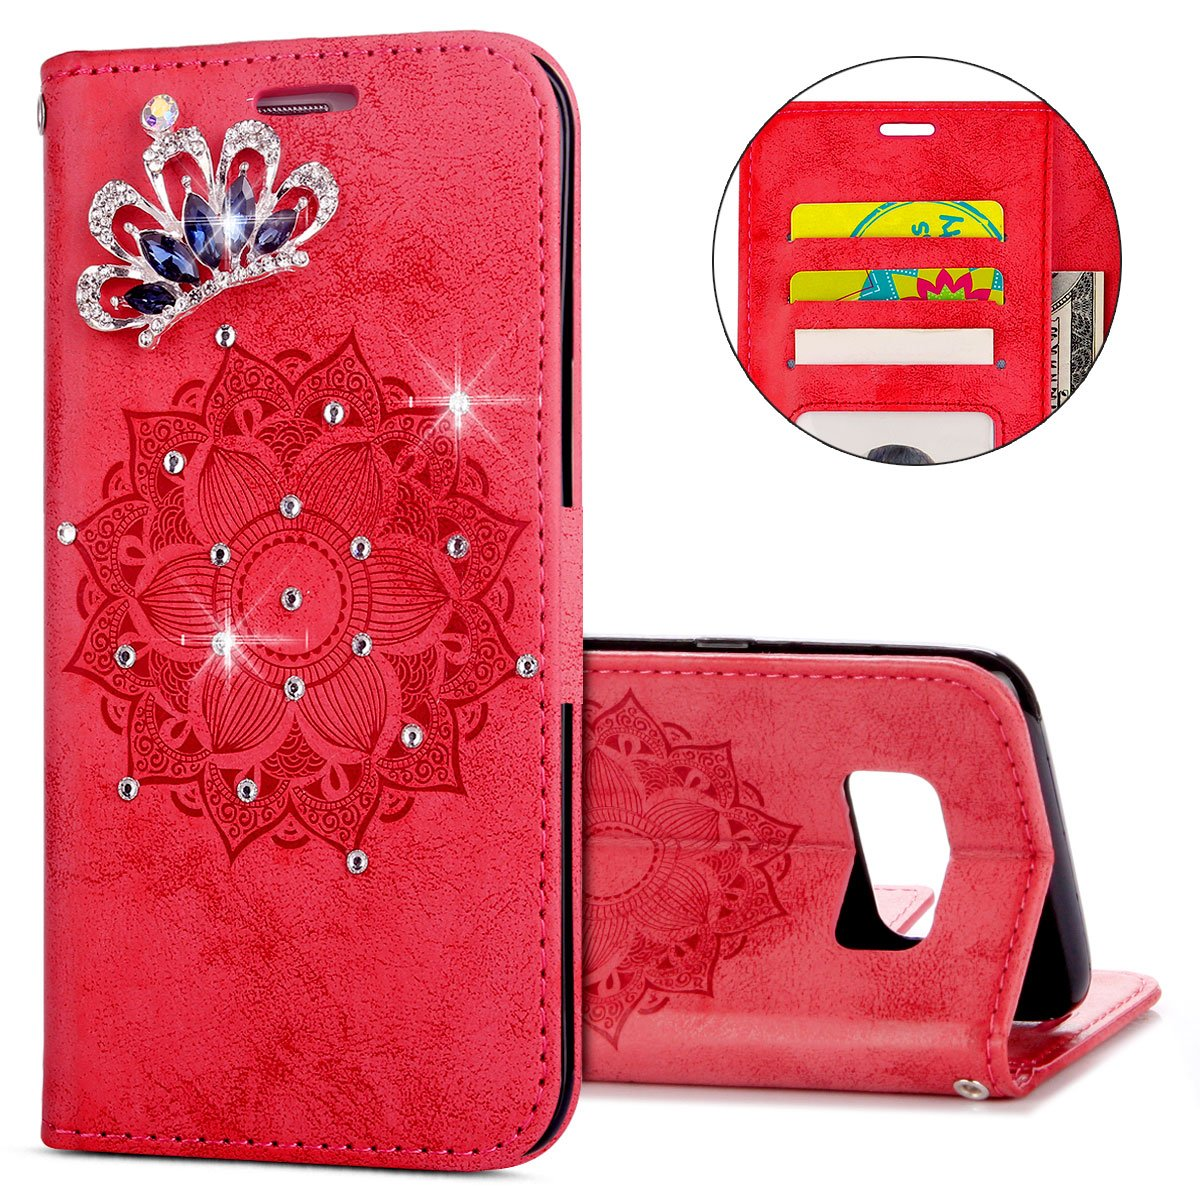 IKASEFU Galaxy S8 Plus Case,3D Clear Crown Rhinestone Diamond Bling Glitter Wallet with Card Holder Emboss Mandala Floral Pu Leather Magnetic Flip Protective Cover for Samsung Galaxy S8 Plus,Red